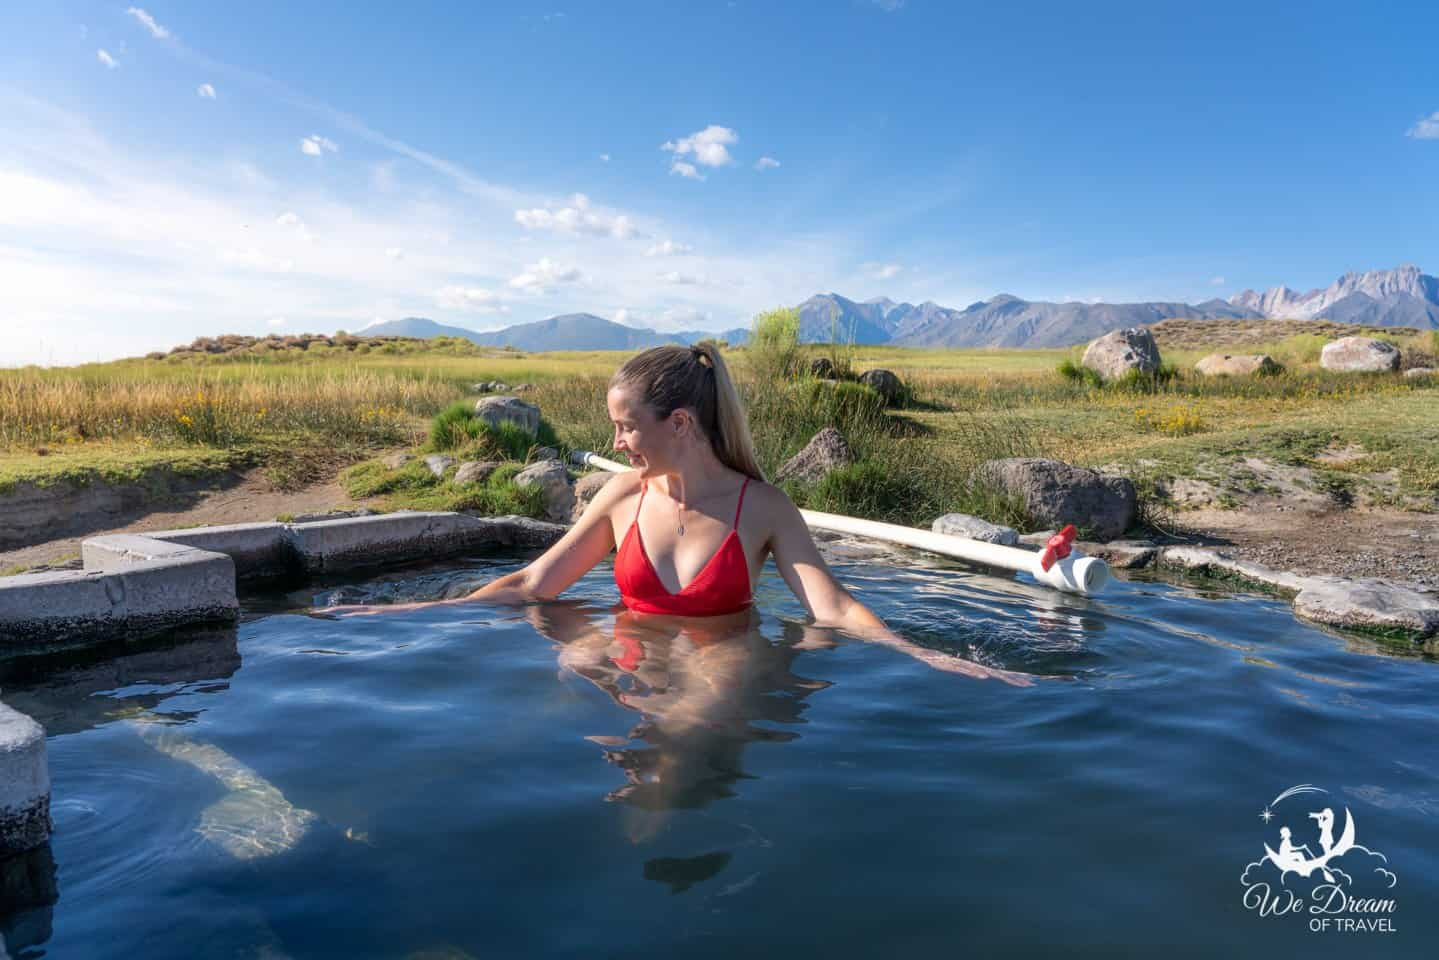 What Shepherd Hot Springs lacks in appearance, it makes up for in comfort, views, and ease of access.